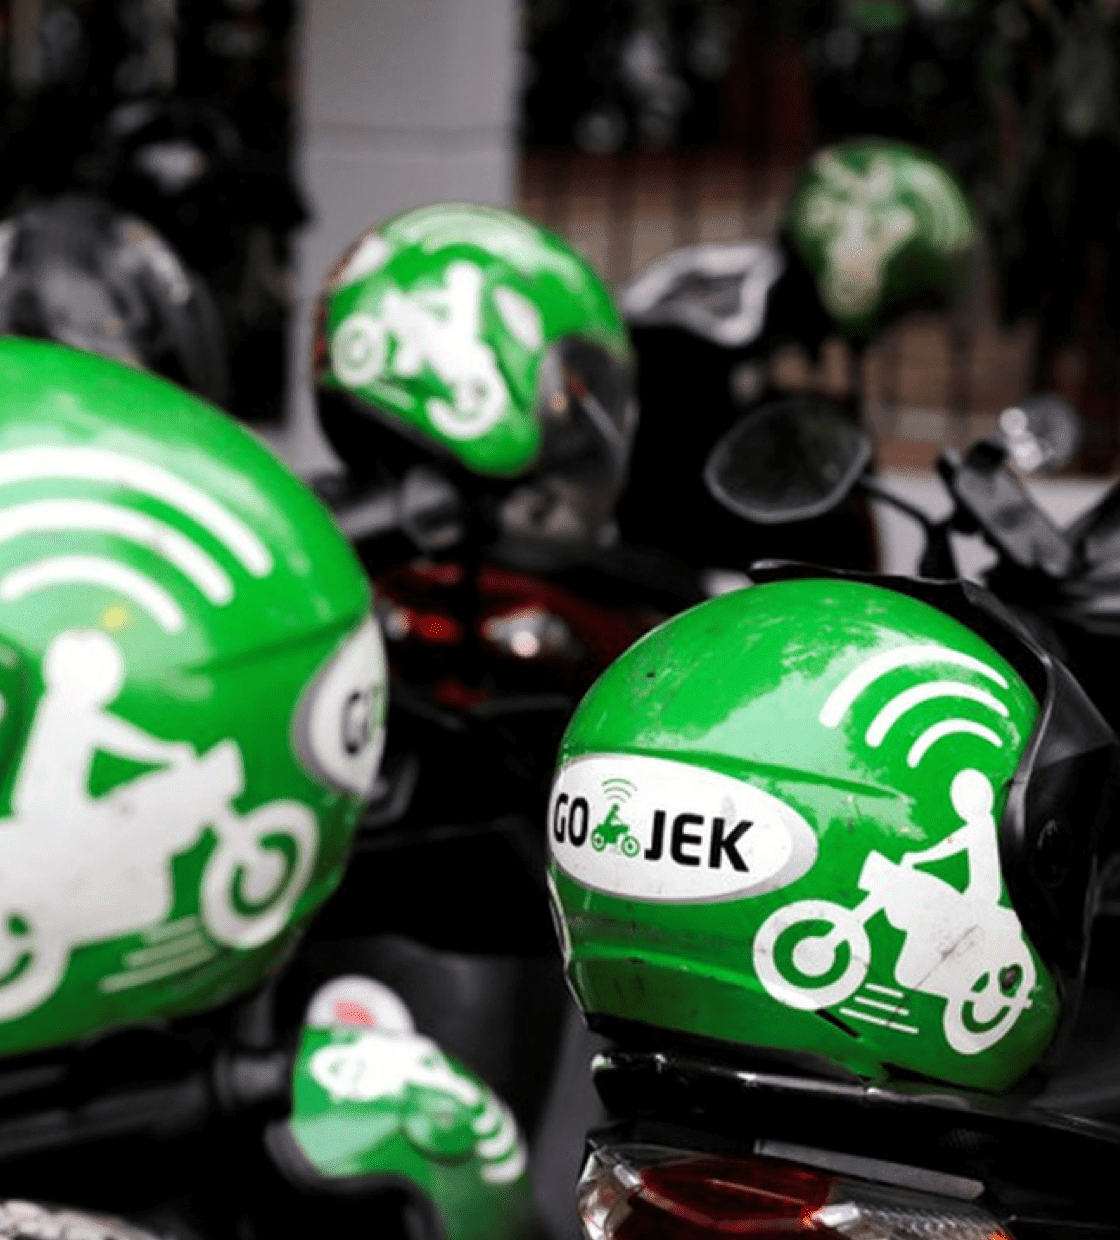 GO-JEK Business Challenges